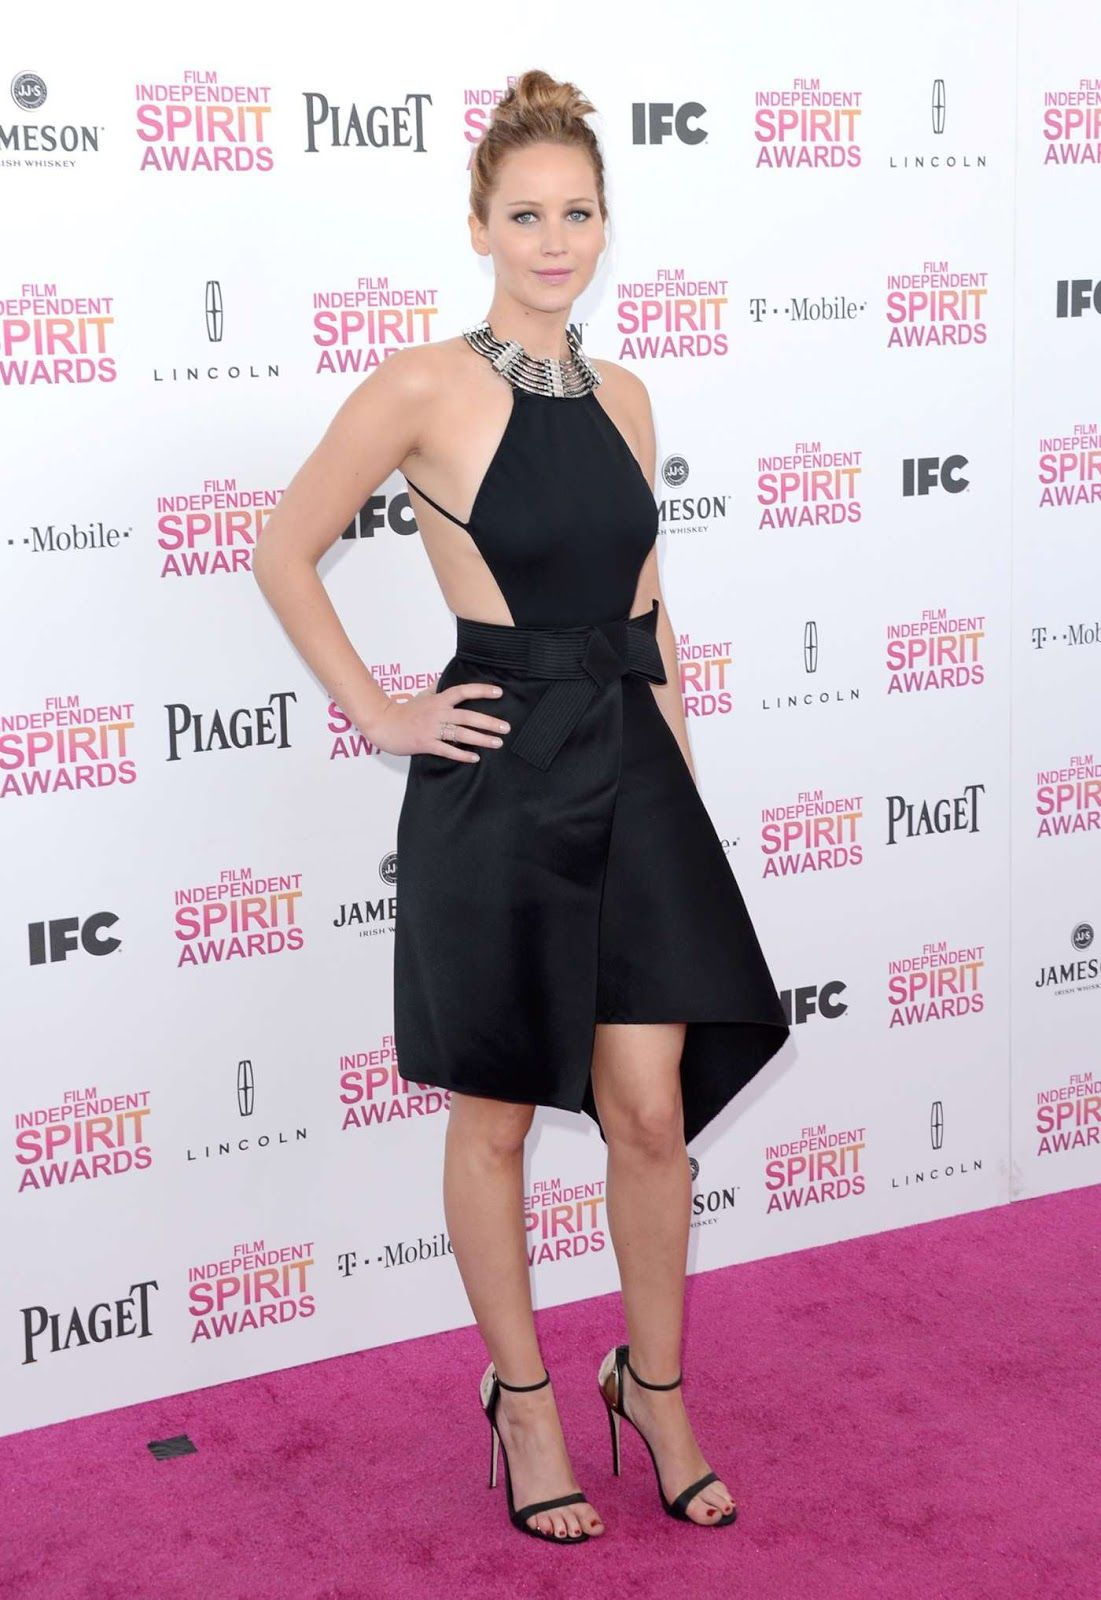 Jennifer Lawrence Film Independent Spirit Awards 2013